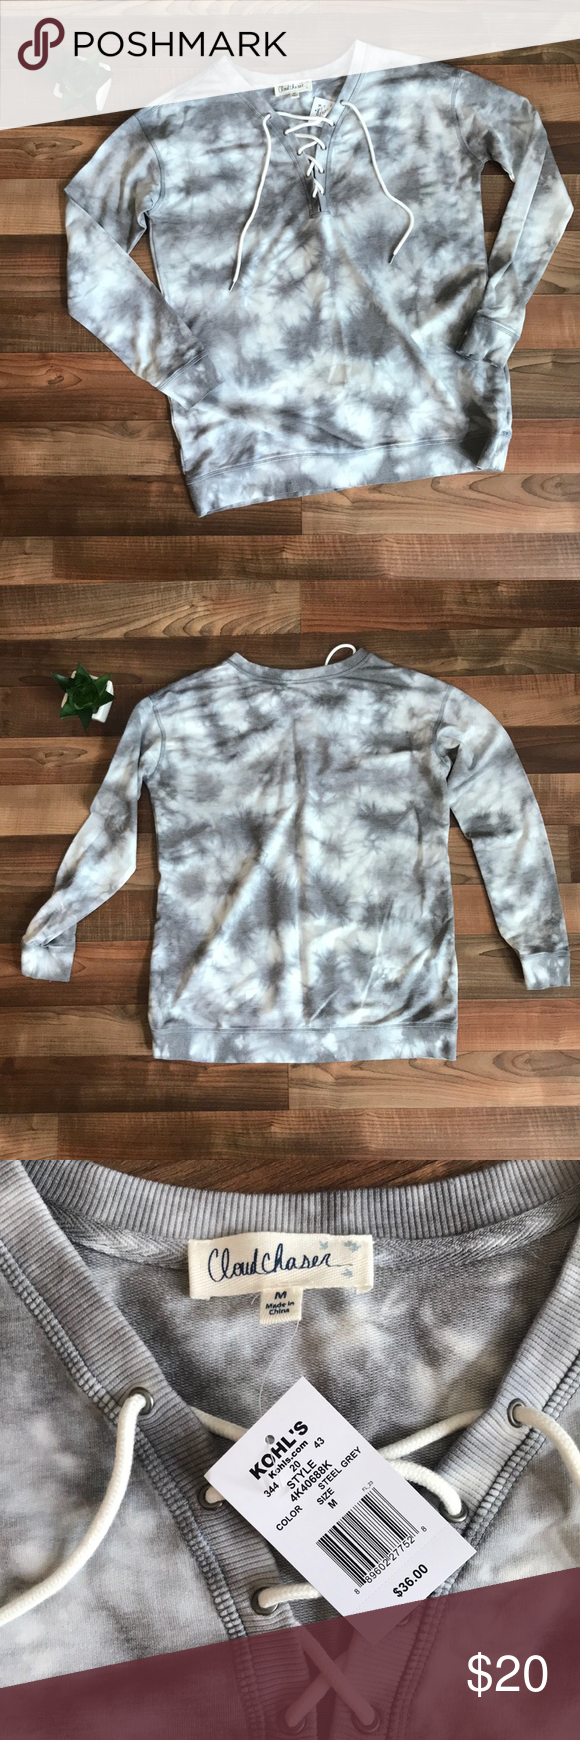 Tie Dye Lace Up Sweatshirt Size M Nwt From Kohl S Cozy Loose Fitting Lace Up Sweatshirt In A Grey Tie Dye Patte Tie Dye Sweatshirt Tie Dye Clothes Design [ 1740 x 580 Pixel ]